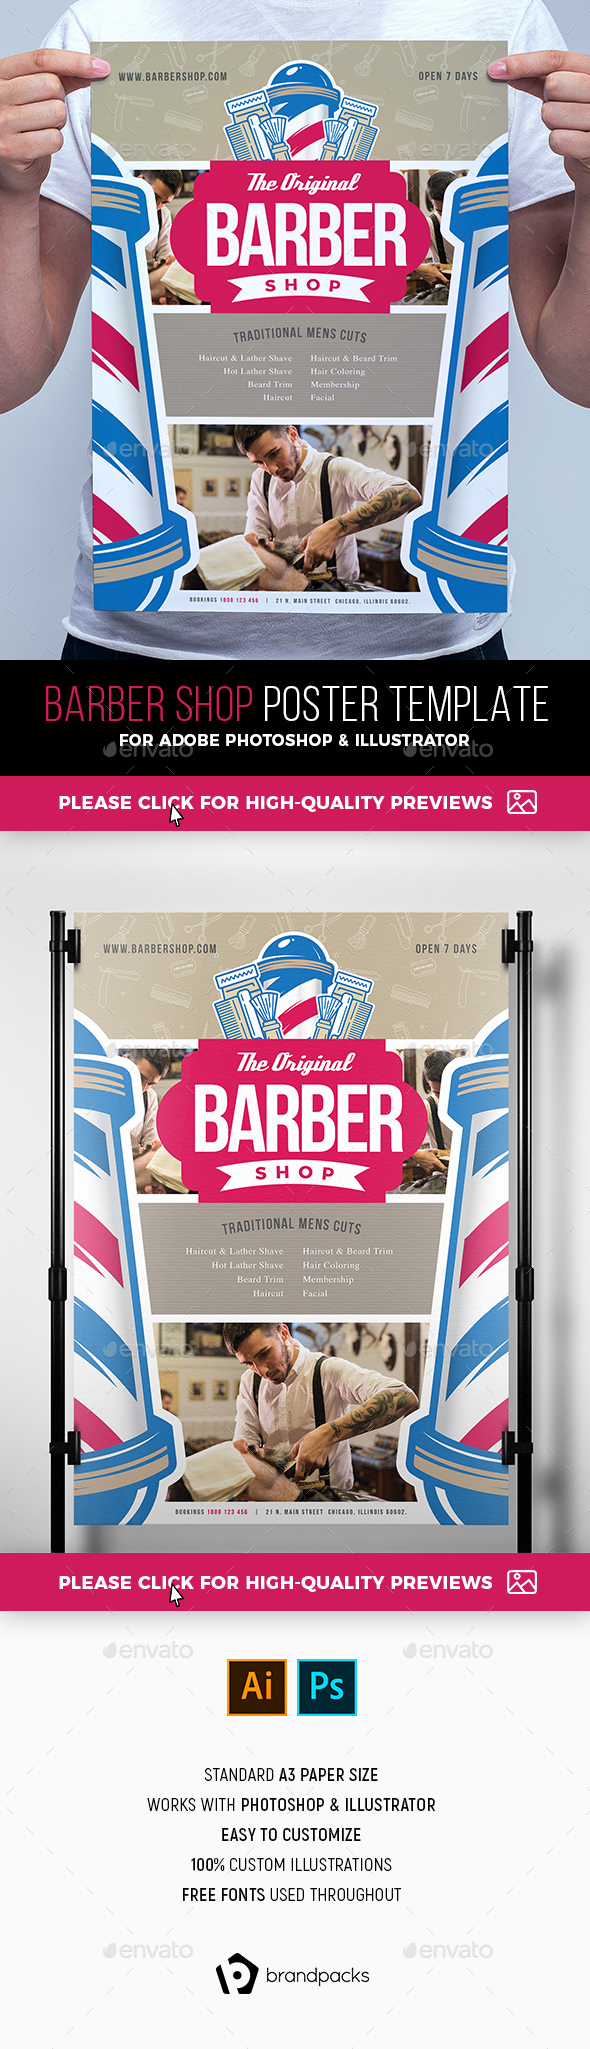 Barber Shop Poster Template - Commerce Flyers